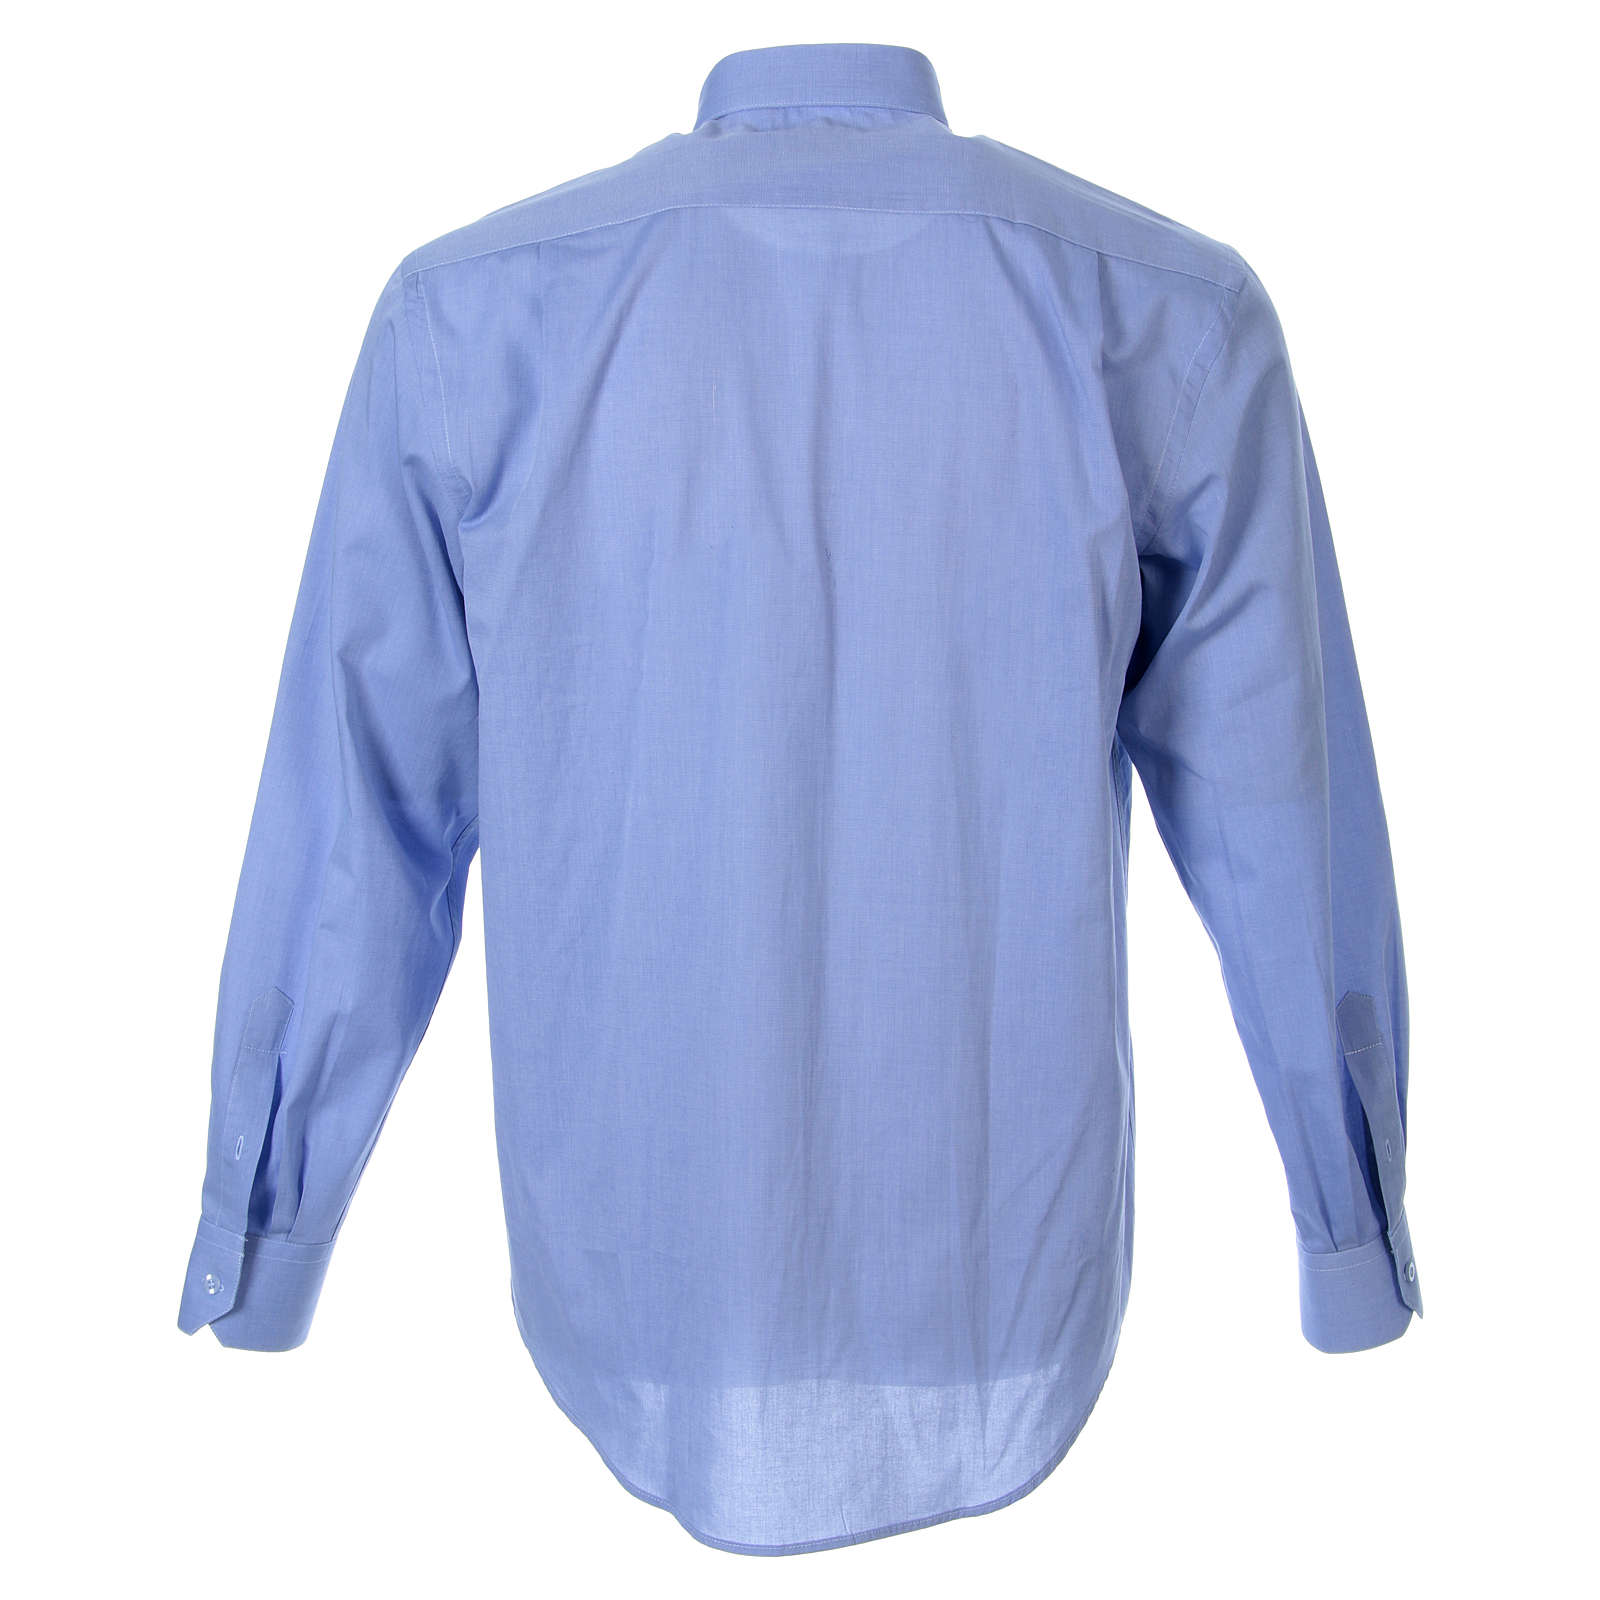 STOCK Clergyman shirt in fil-a-fil light blue cotton, long sleeves 4